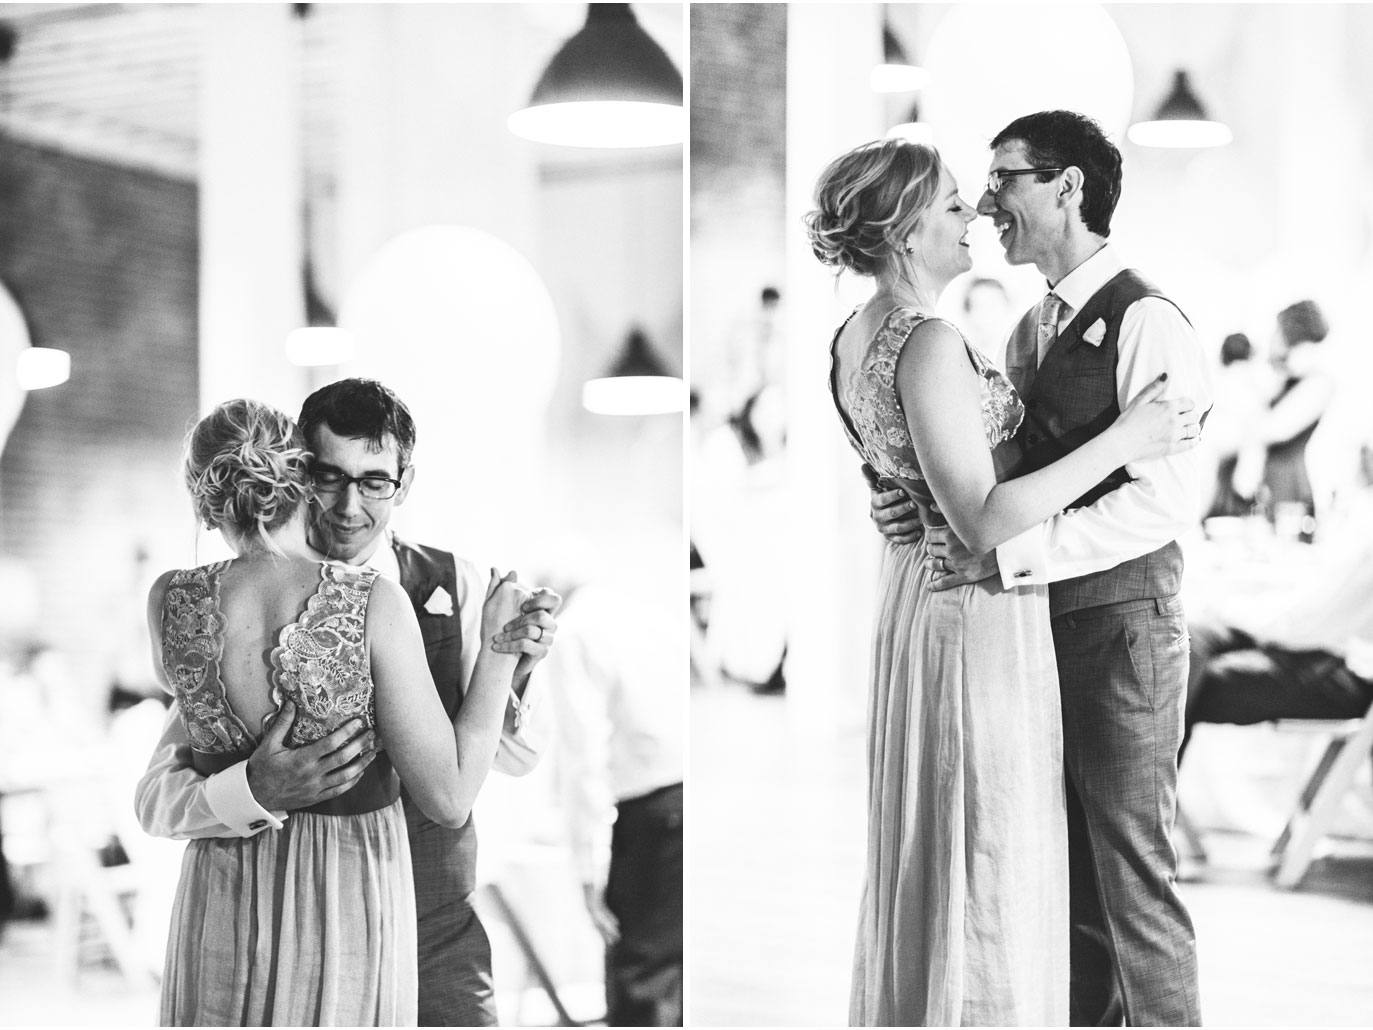 Dave + Emily | The Unique Space | Los Angeles, California | www.vitaeweddings.com